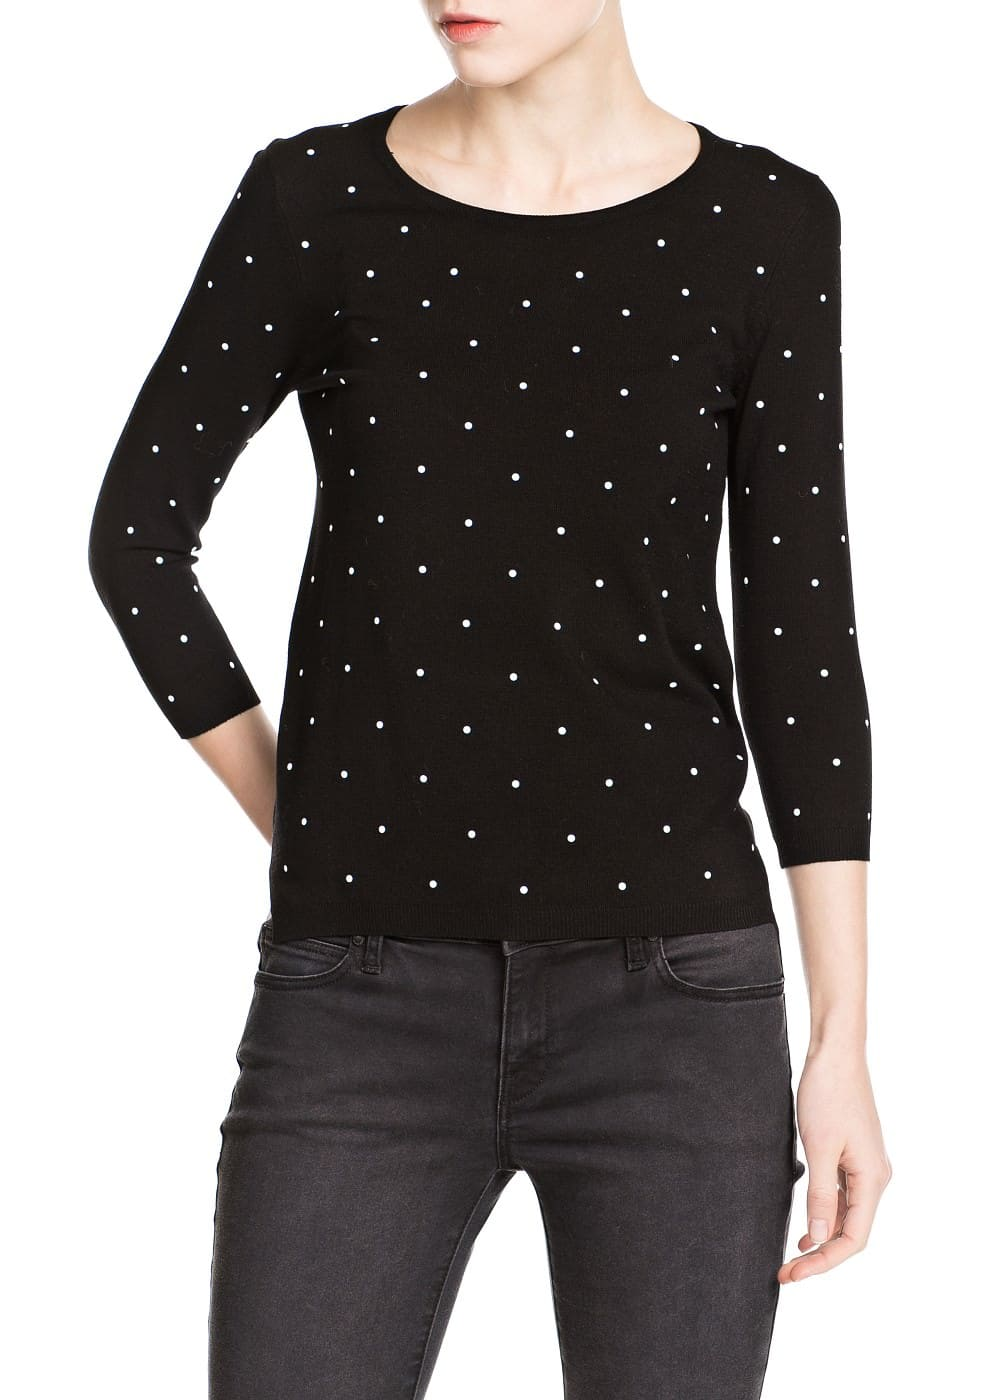 Polka-dot sweater